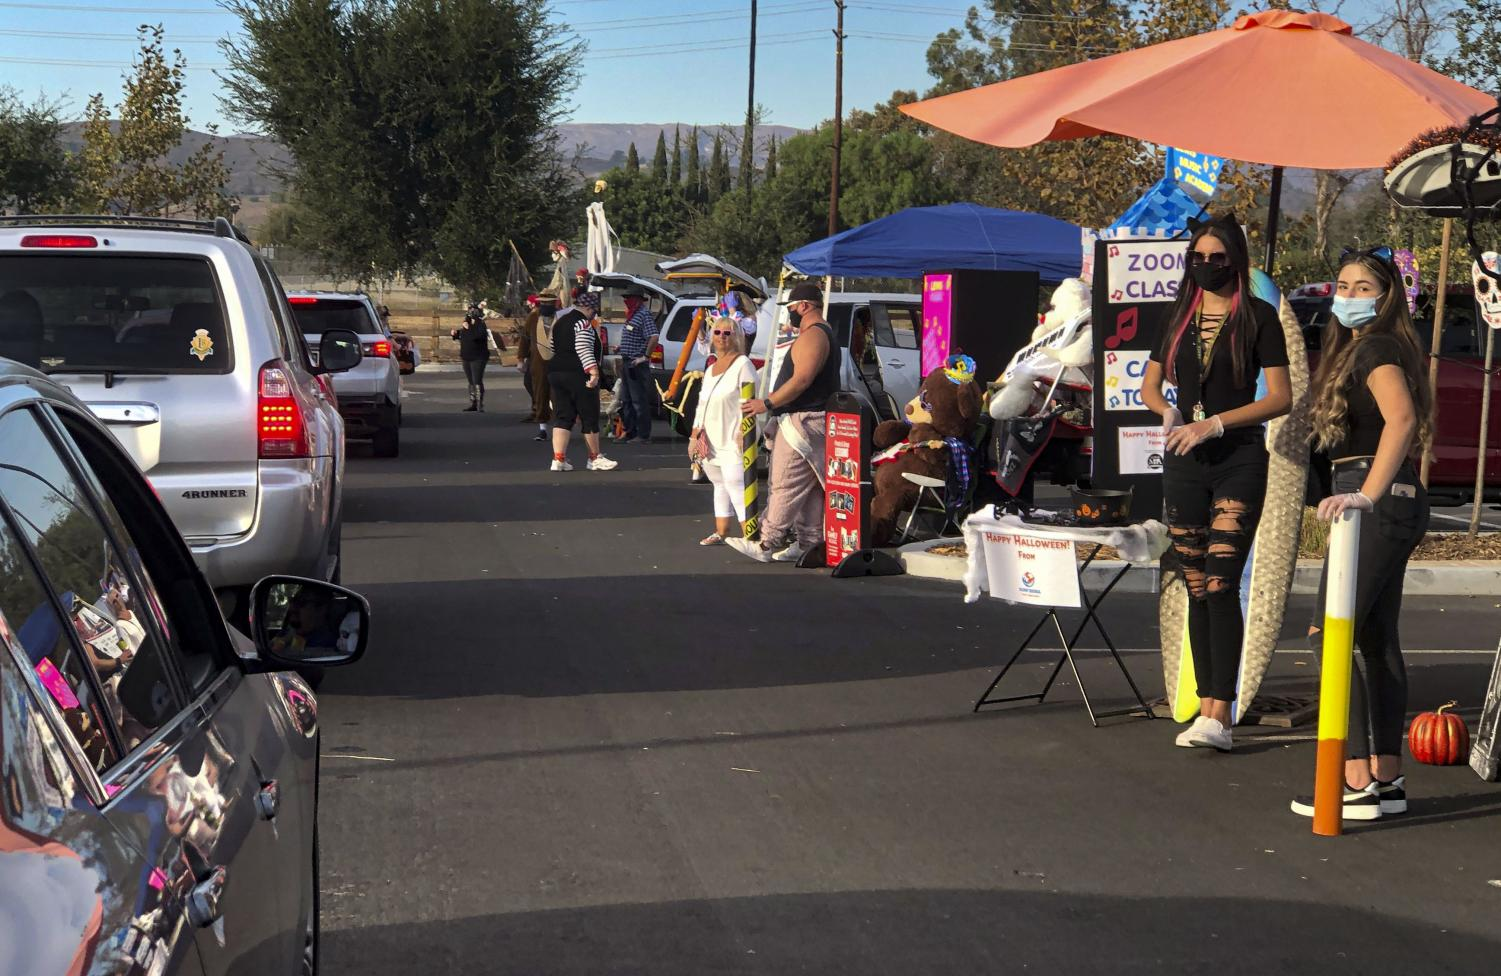 Local businesses pass out candy to cars in line at the Spooky Avenue Halloween drive-thru in Moorpark, CA. on Saturday, Oct. 31.